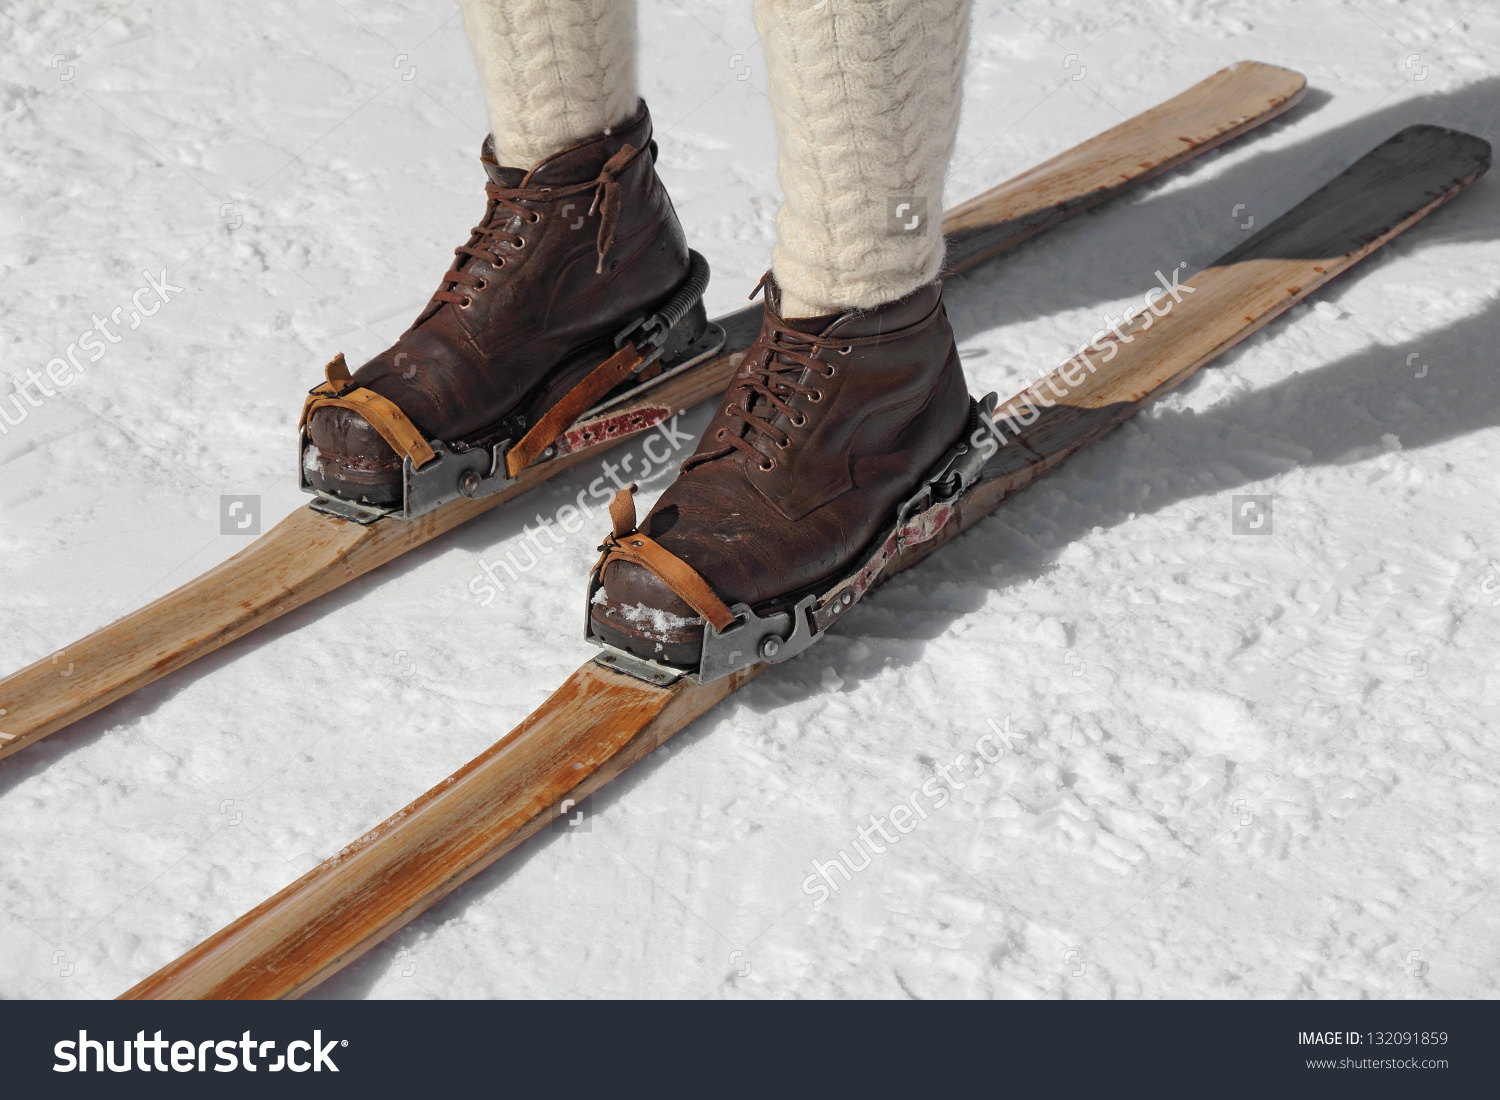 Old Wooden Skis Leather Ski Boots Stock Photo 132091859.